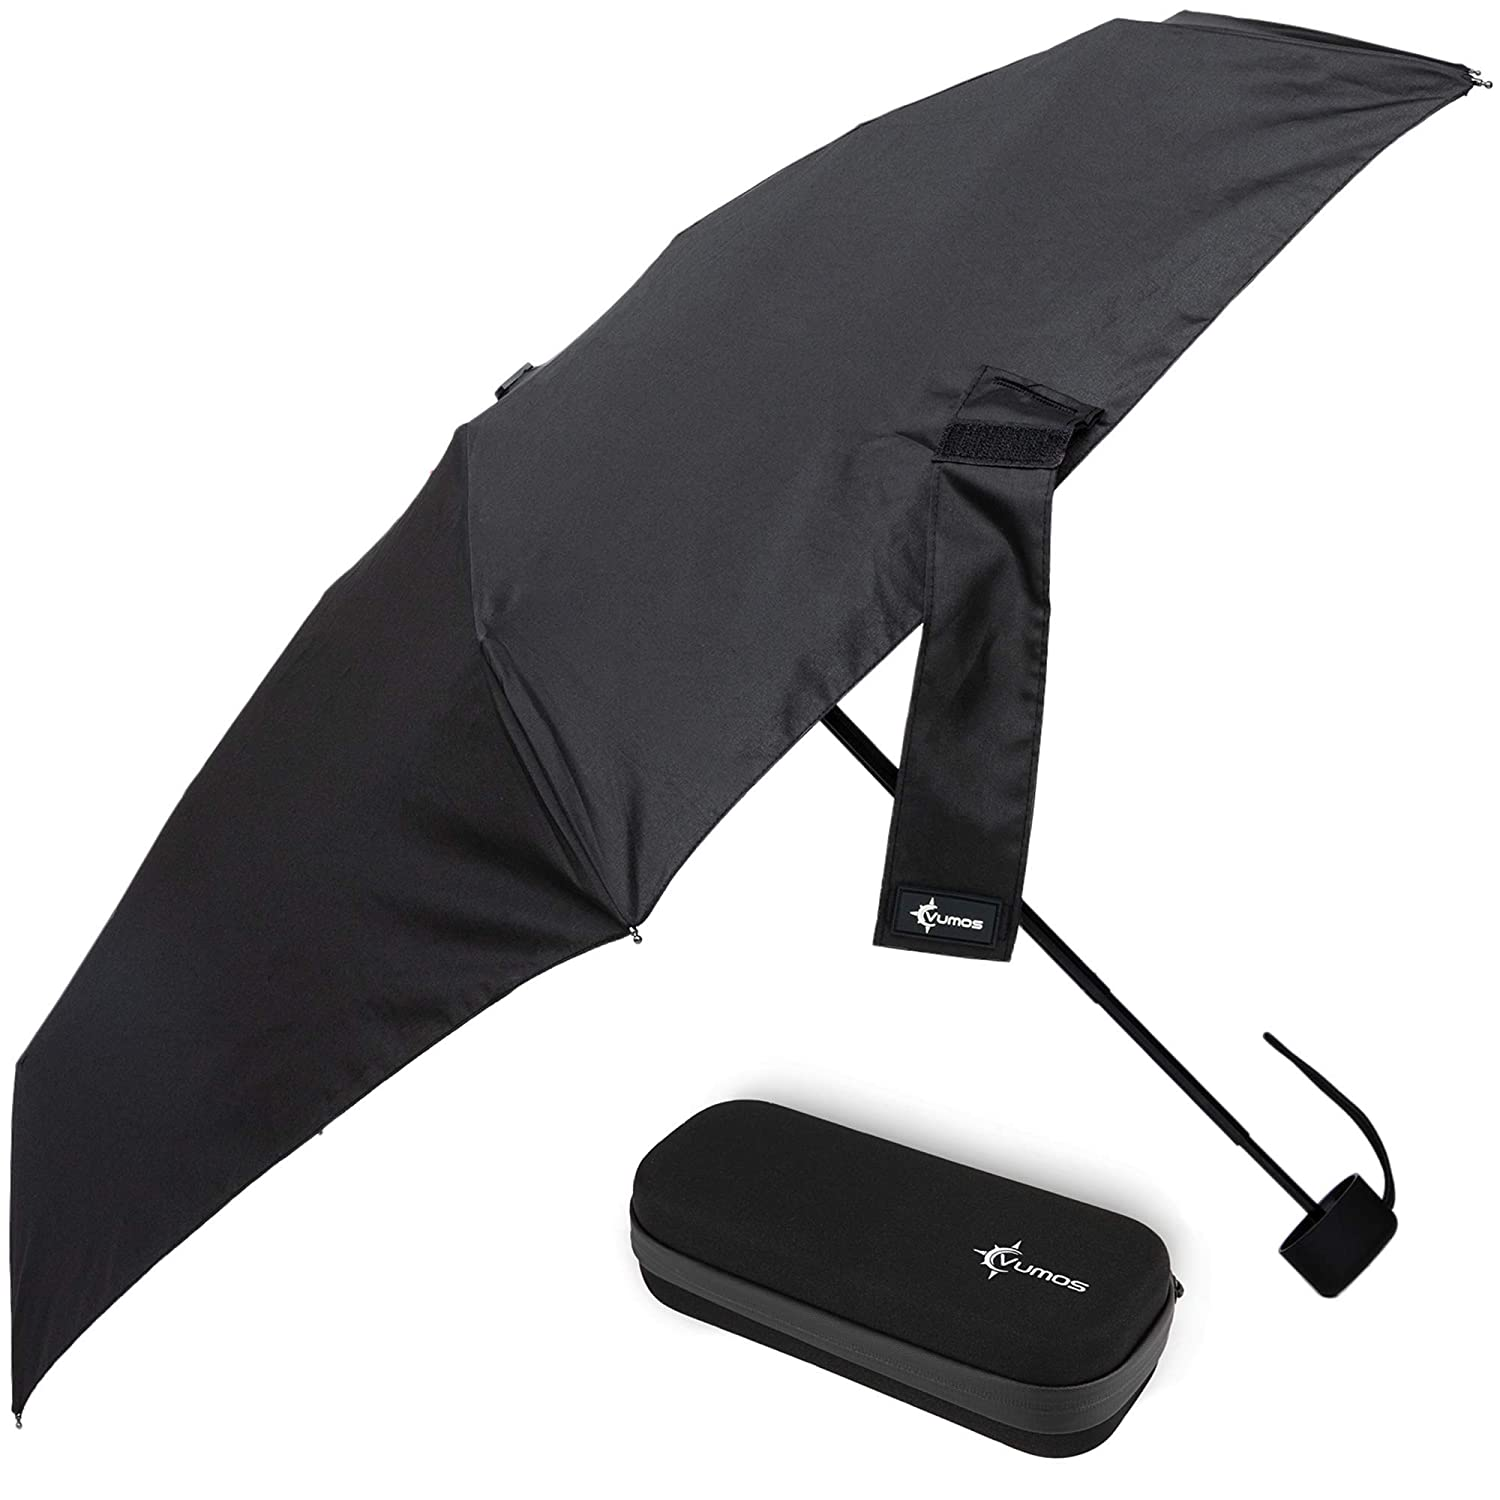 Small and Compact for Backpack or Purse Travel Umbrella with Waterproof Case Great Umbrella for Women Men or Kids. Classic Gray